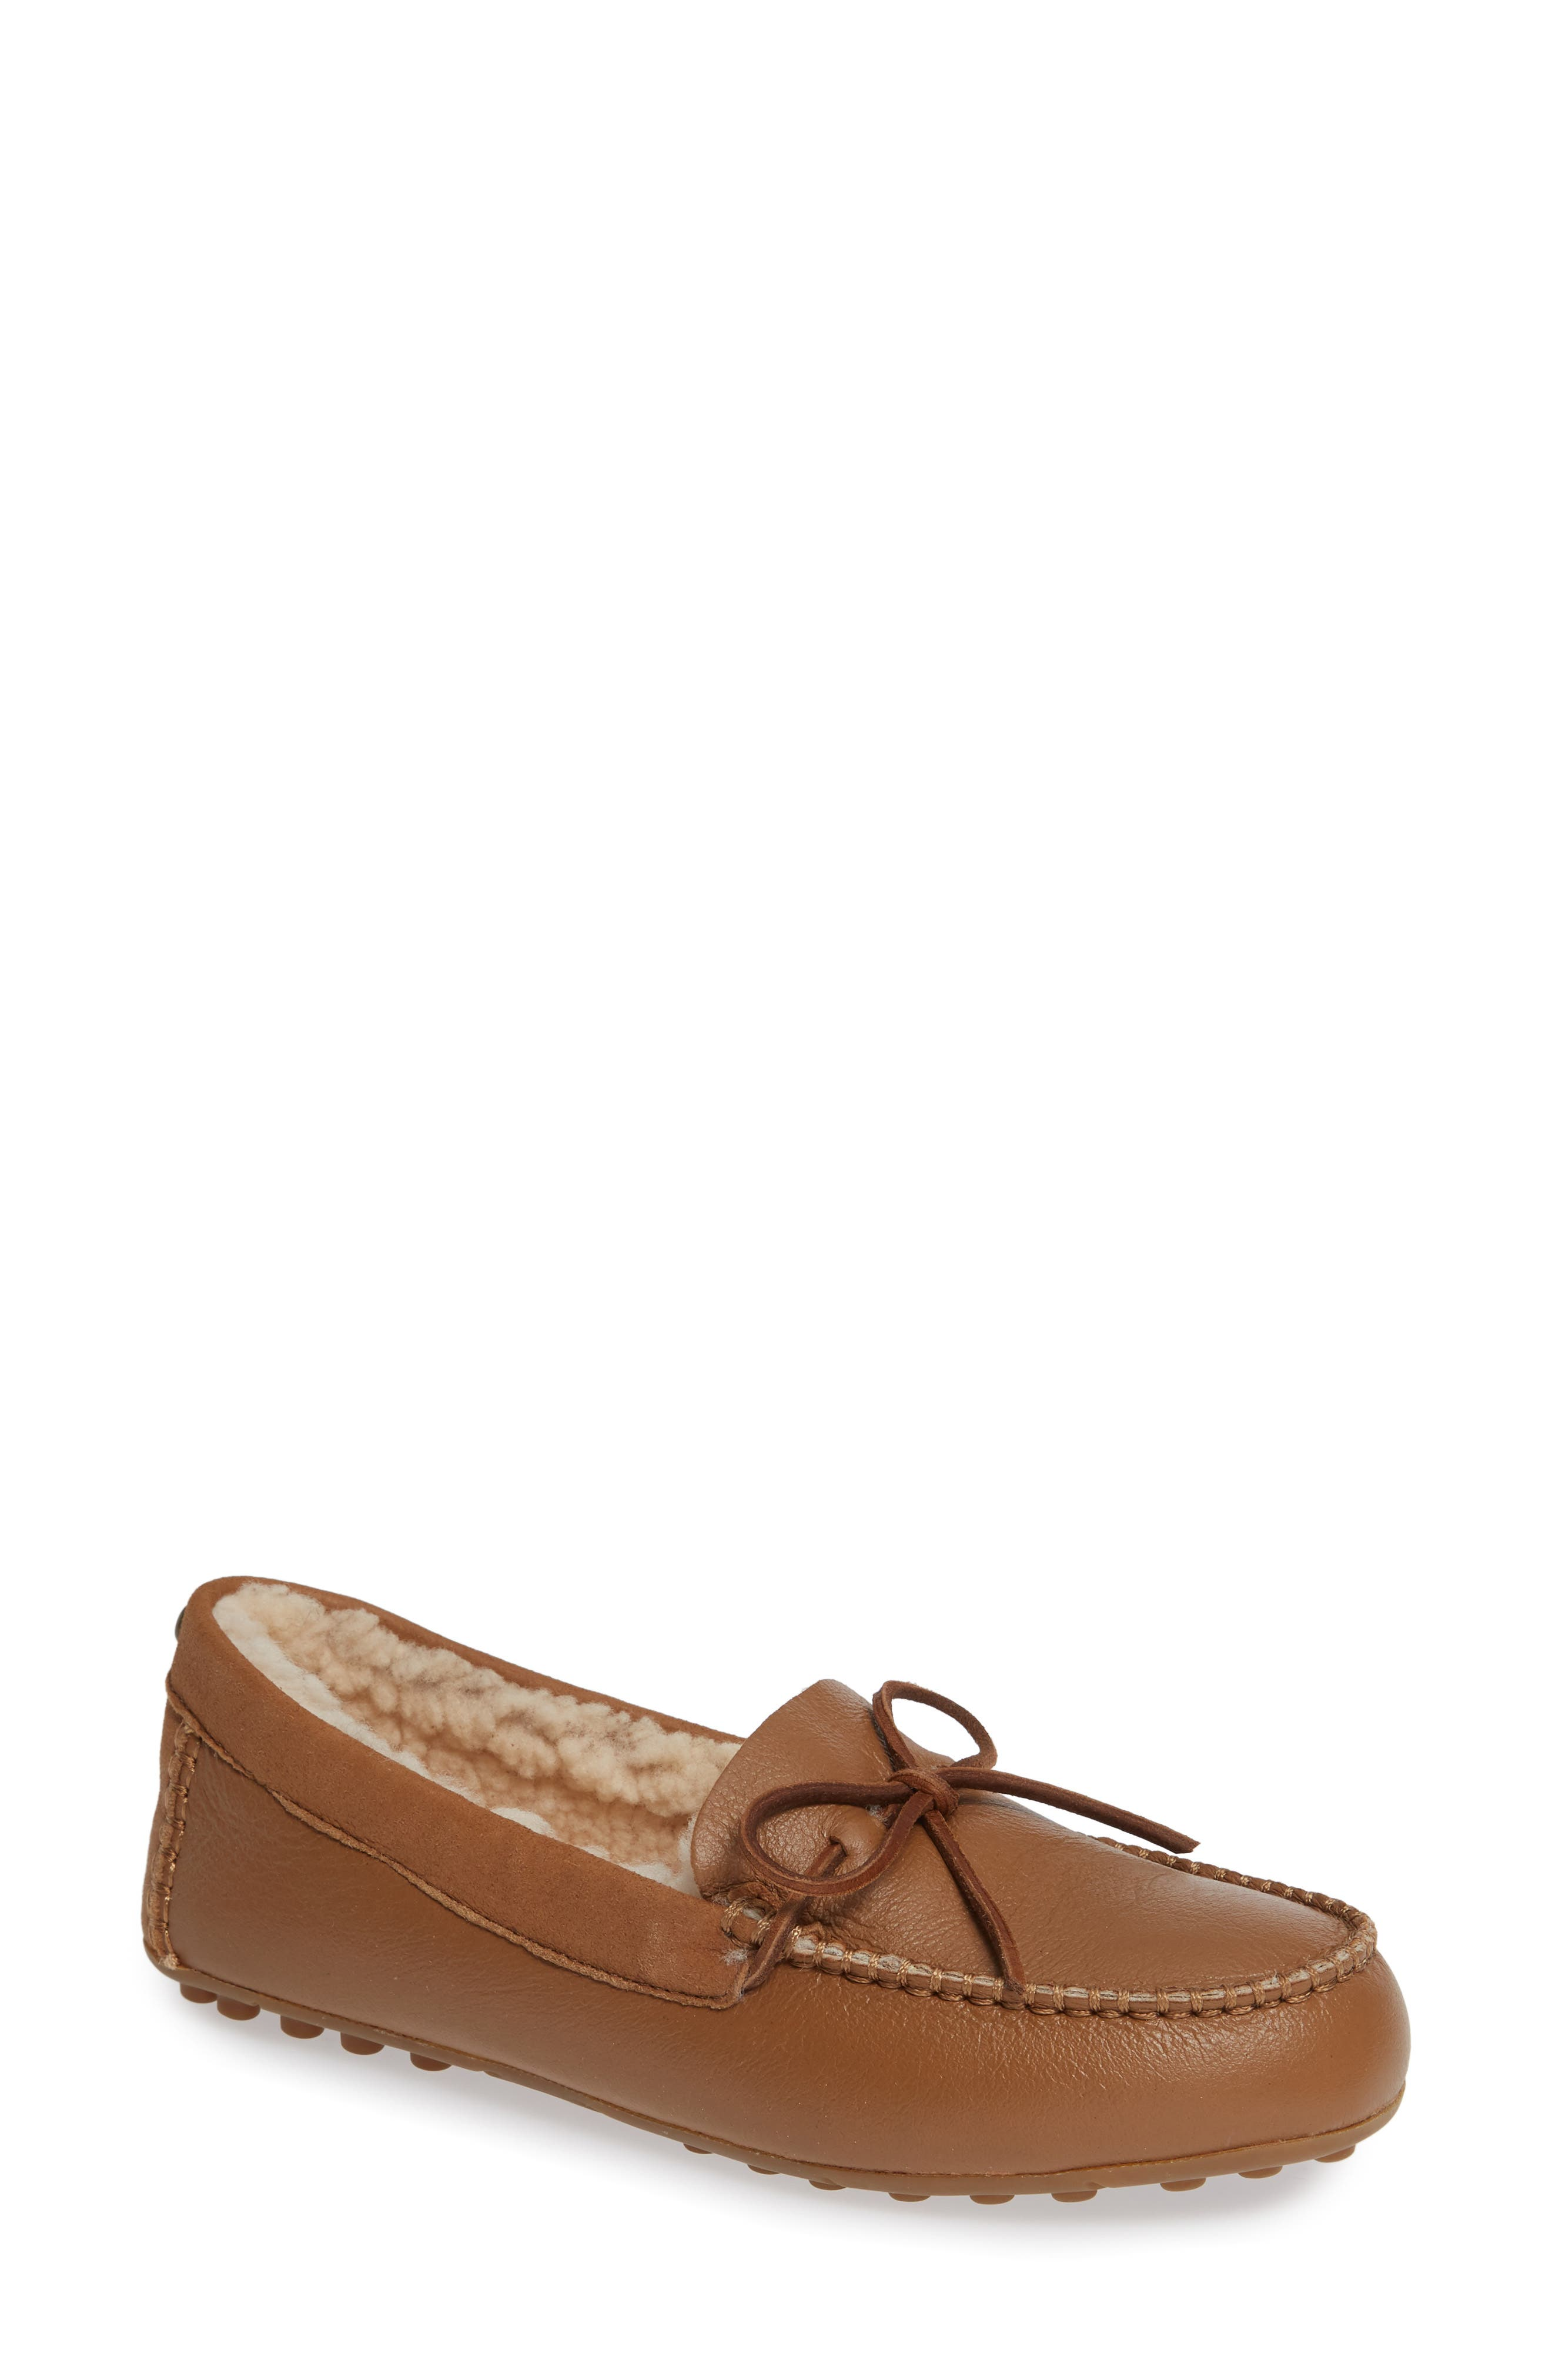 Ugg Deluxe Loafer, Brown